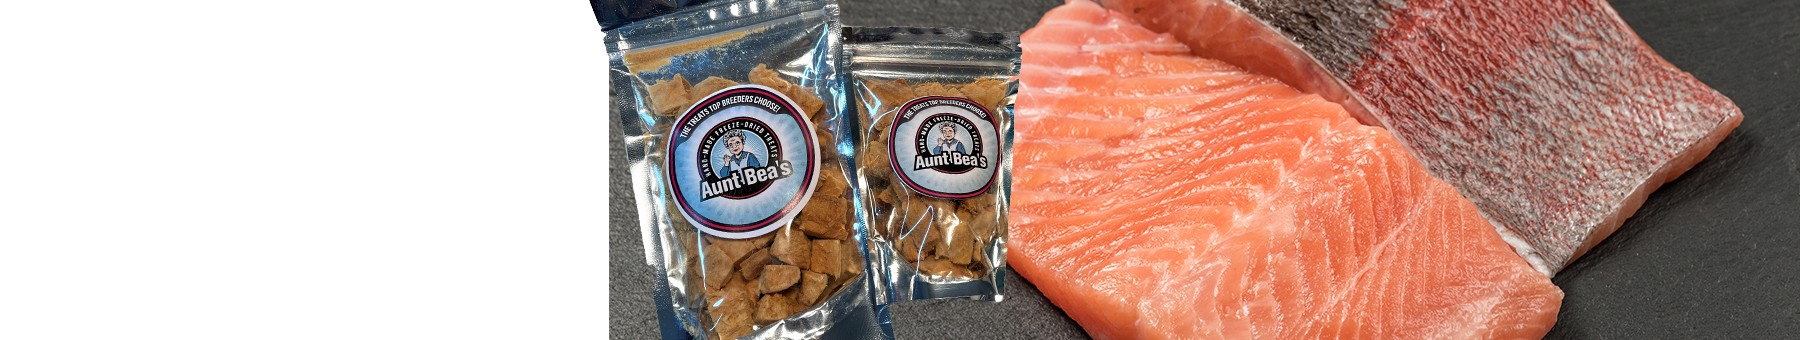 Freeze-dried, high quality hand-made, delicious pet treats